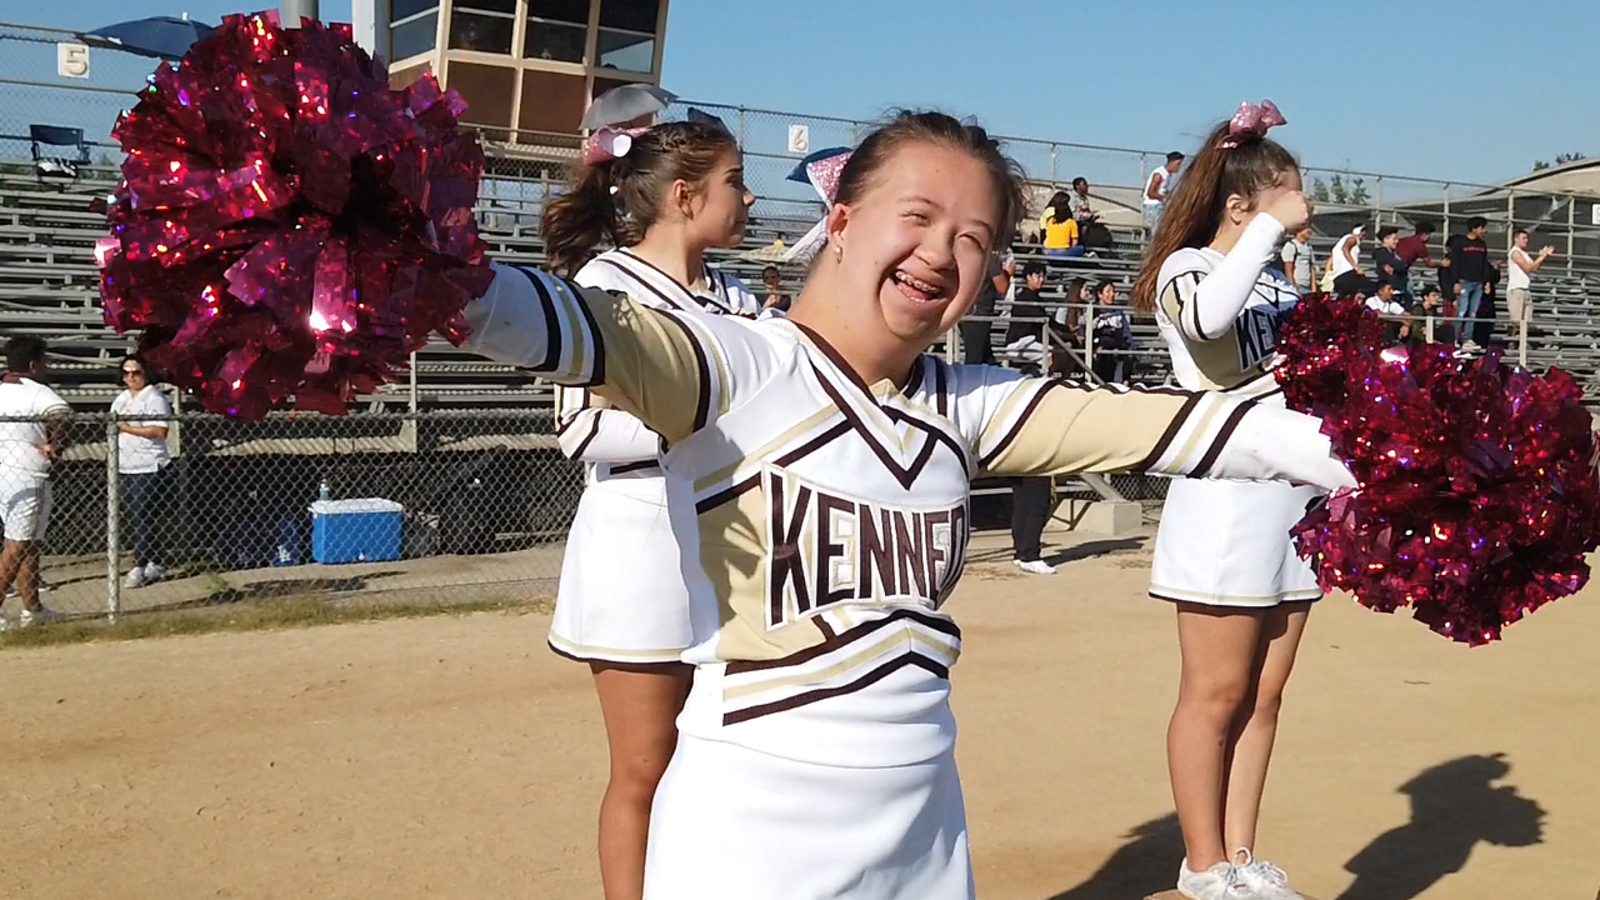 Cheerleader with Down syndrome thriving in the SFV